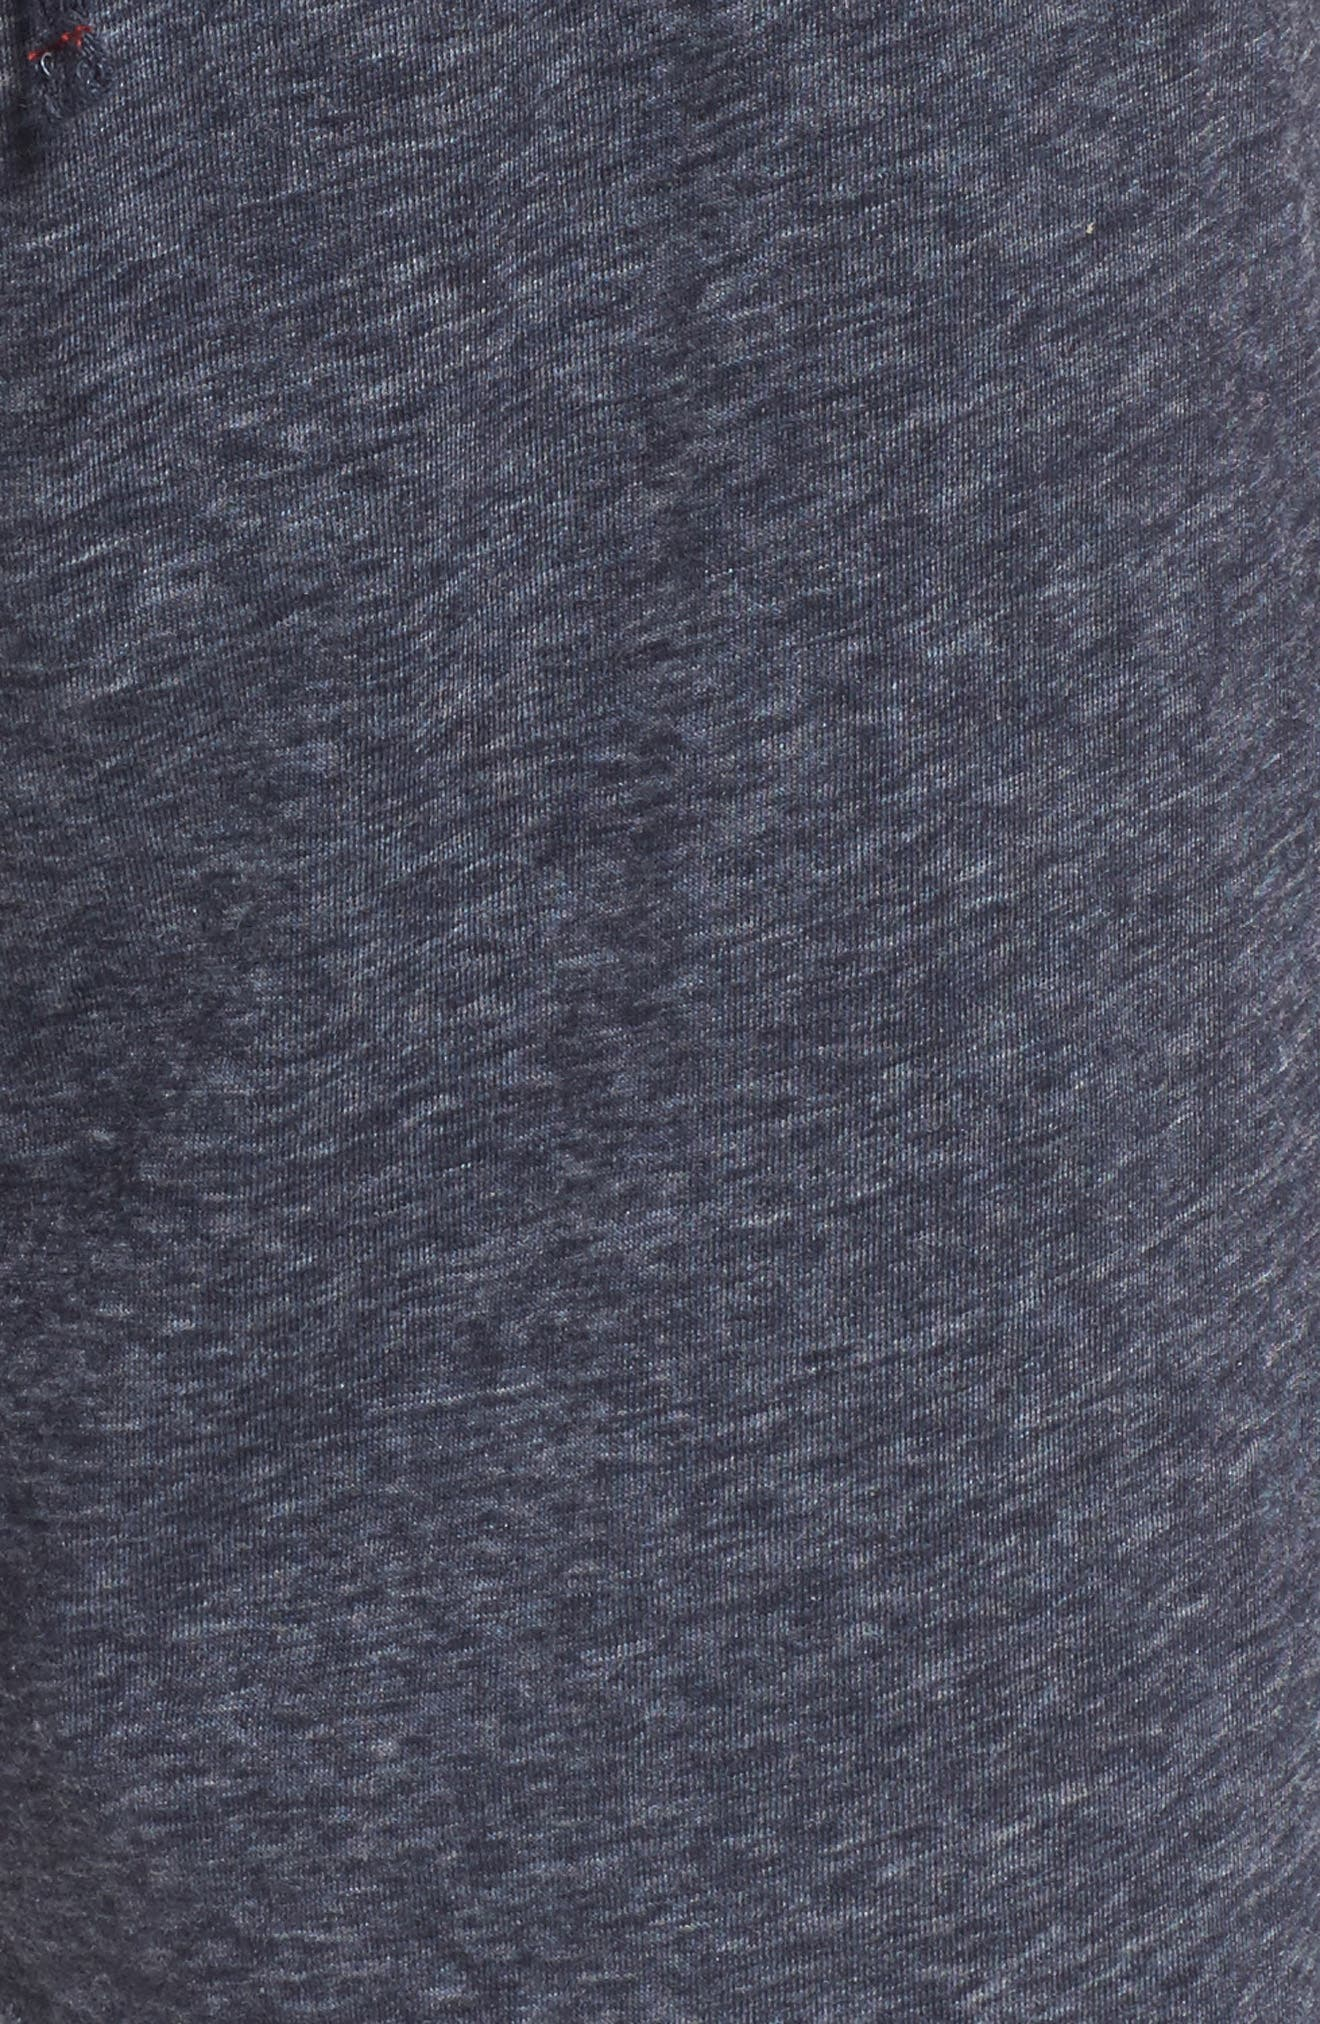 Recycled Cotton Blend Lounge Shorts,                             Alternate thumbnail 5, color,                             NAVY HEATHER